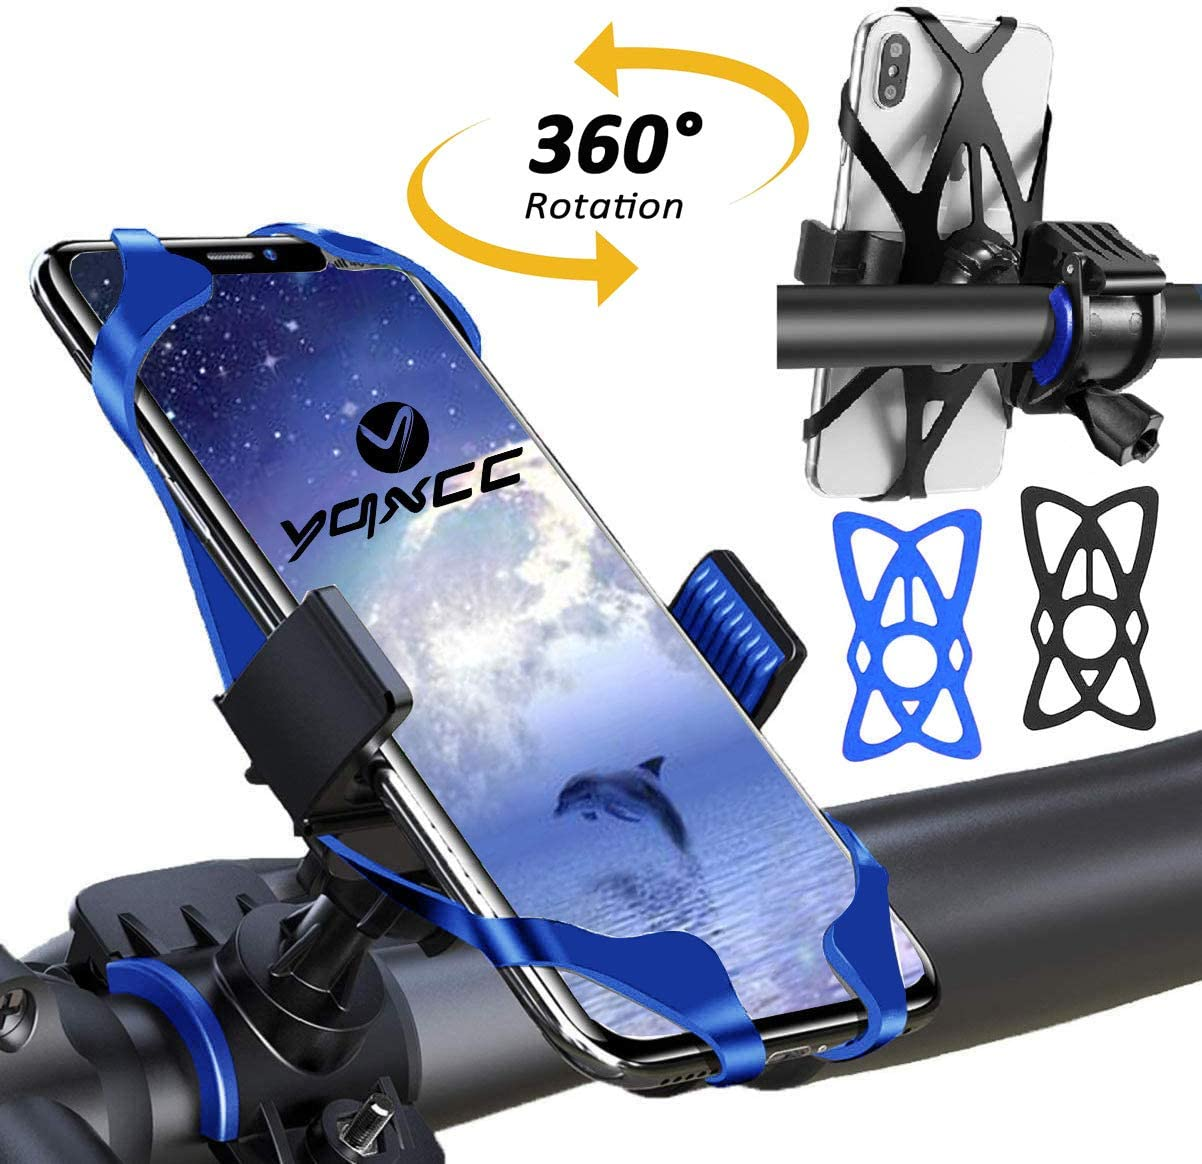 YQXCC Bike Phone Mount Bicycle Motorcycle Holder, 360° Rotation Bike Phone Holder, Bike Accessories, Universal Cradle Clamp for iOS Android Smart Phone (Blue)